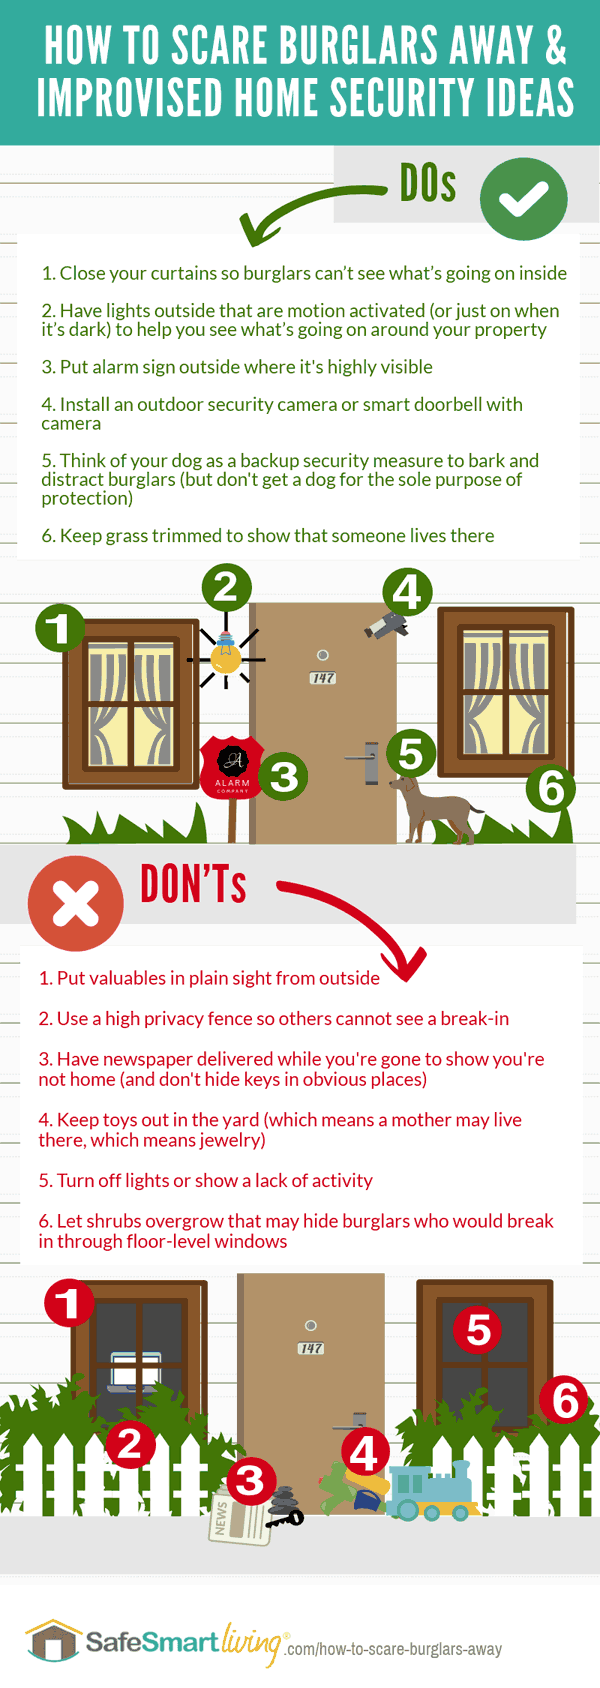 How to Scare Burglars Away Infographic